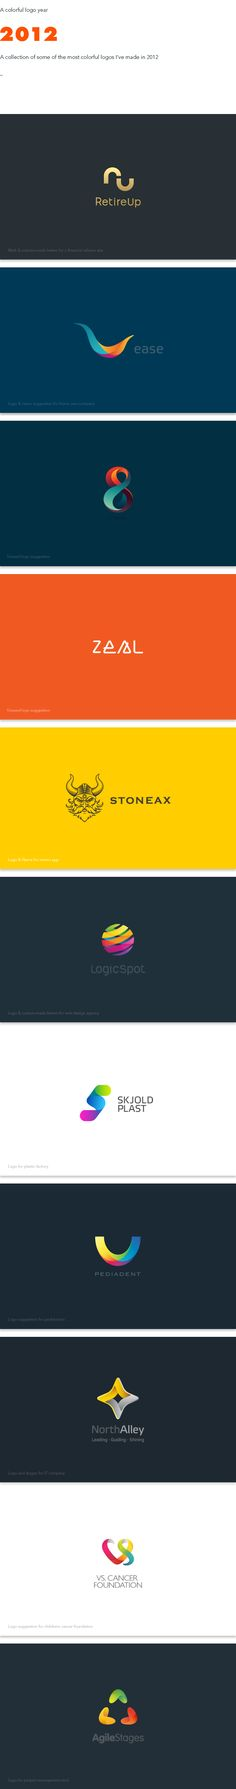 A colorful logo year 2012 by Maria Grønlund, via Behance